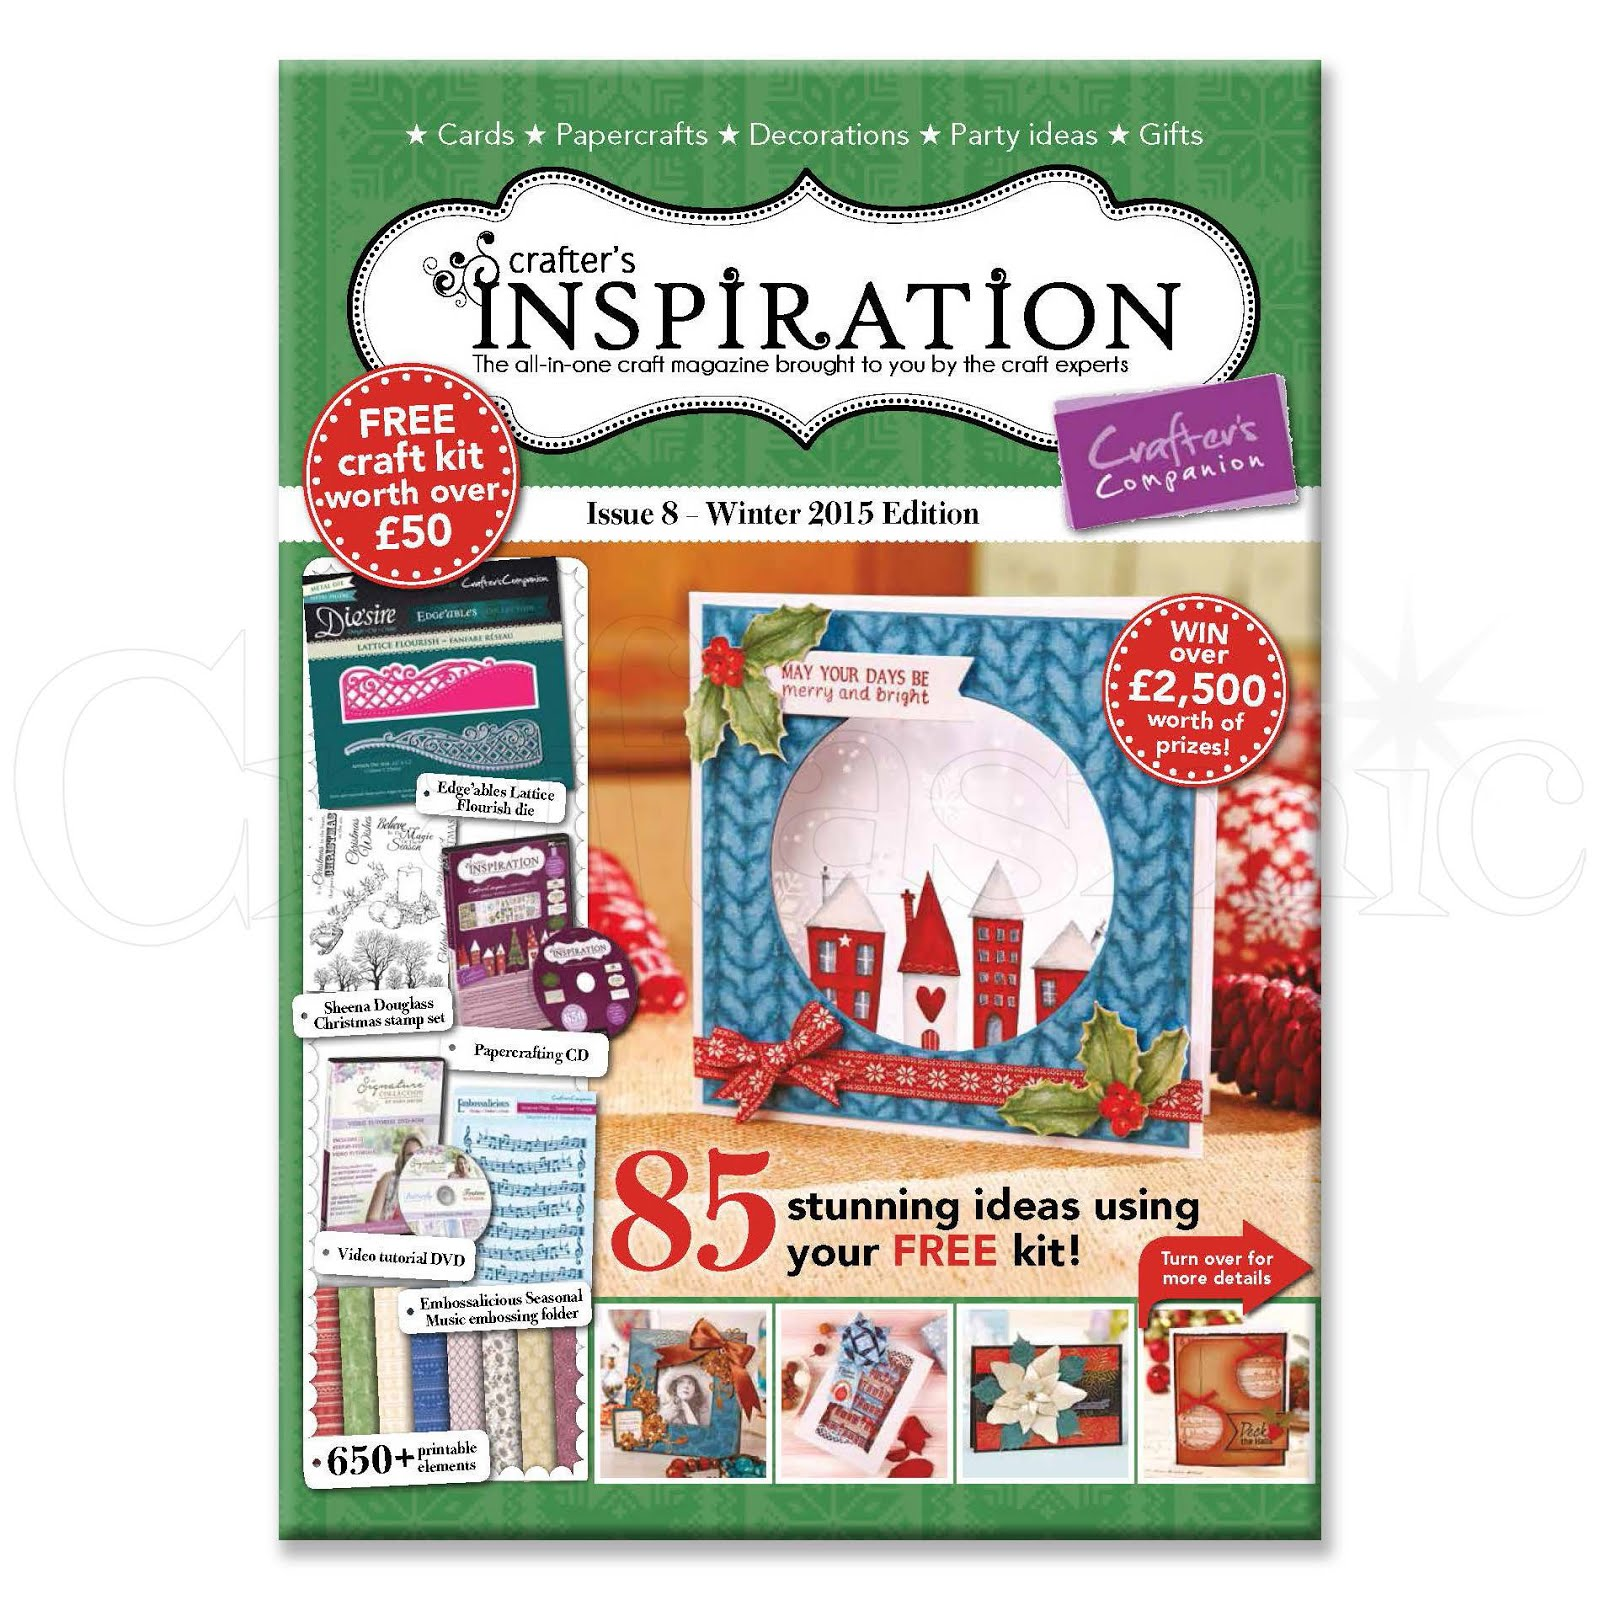 Thrilled to be featured in the latest Crafter's Companion Inspirations magazine!